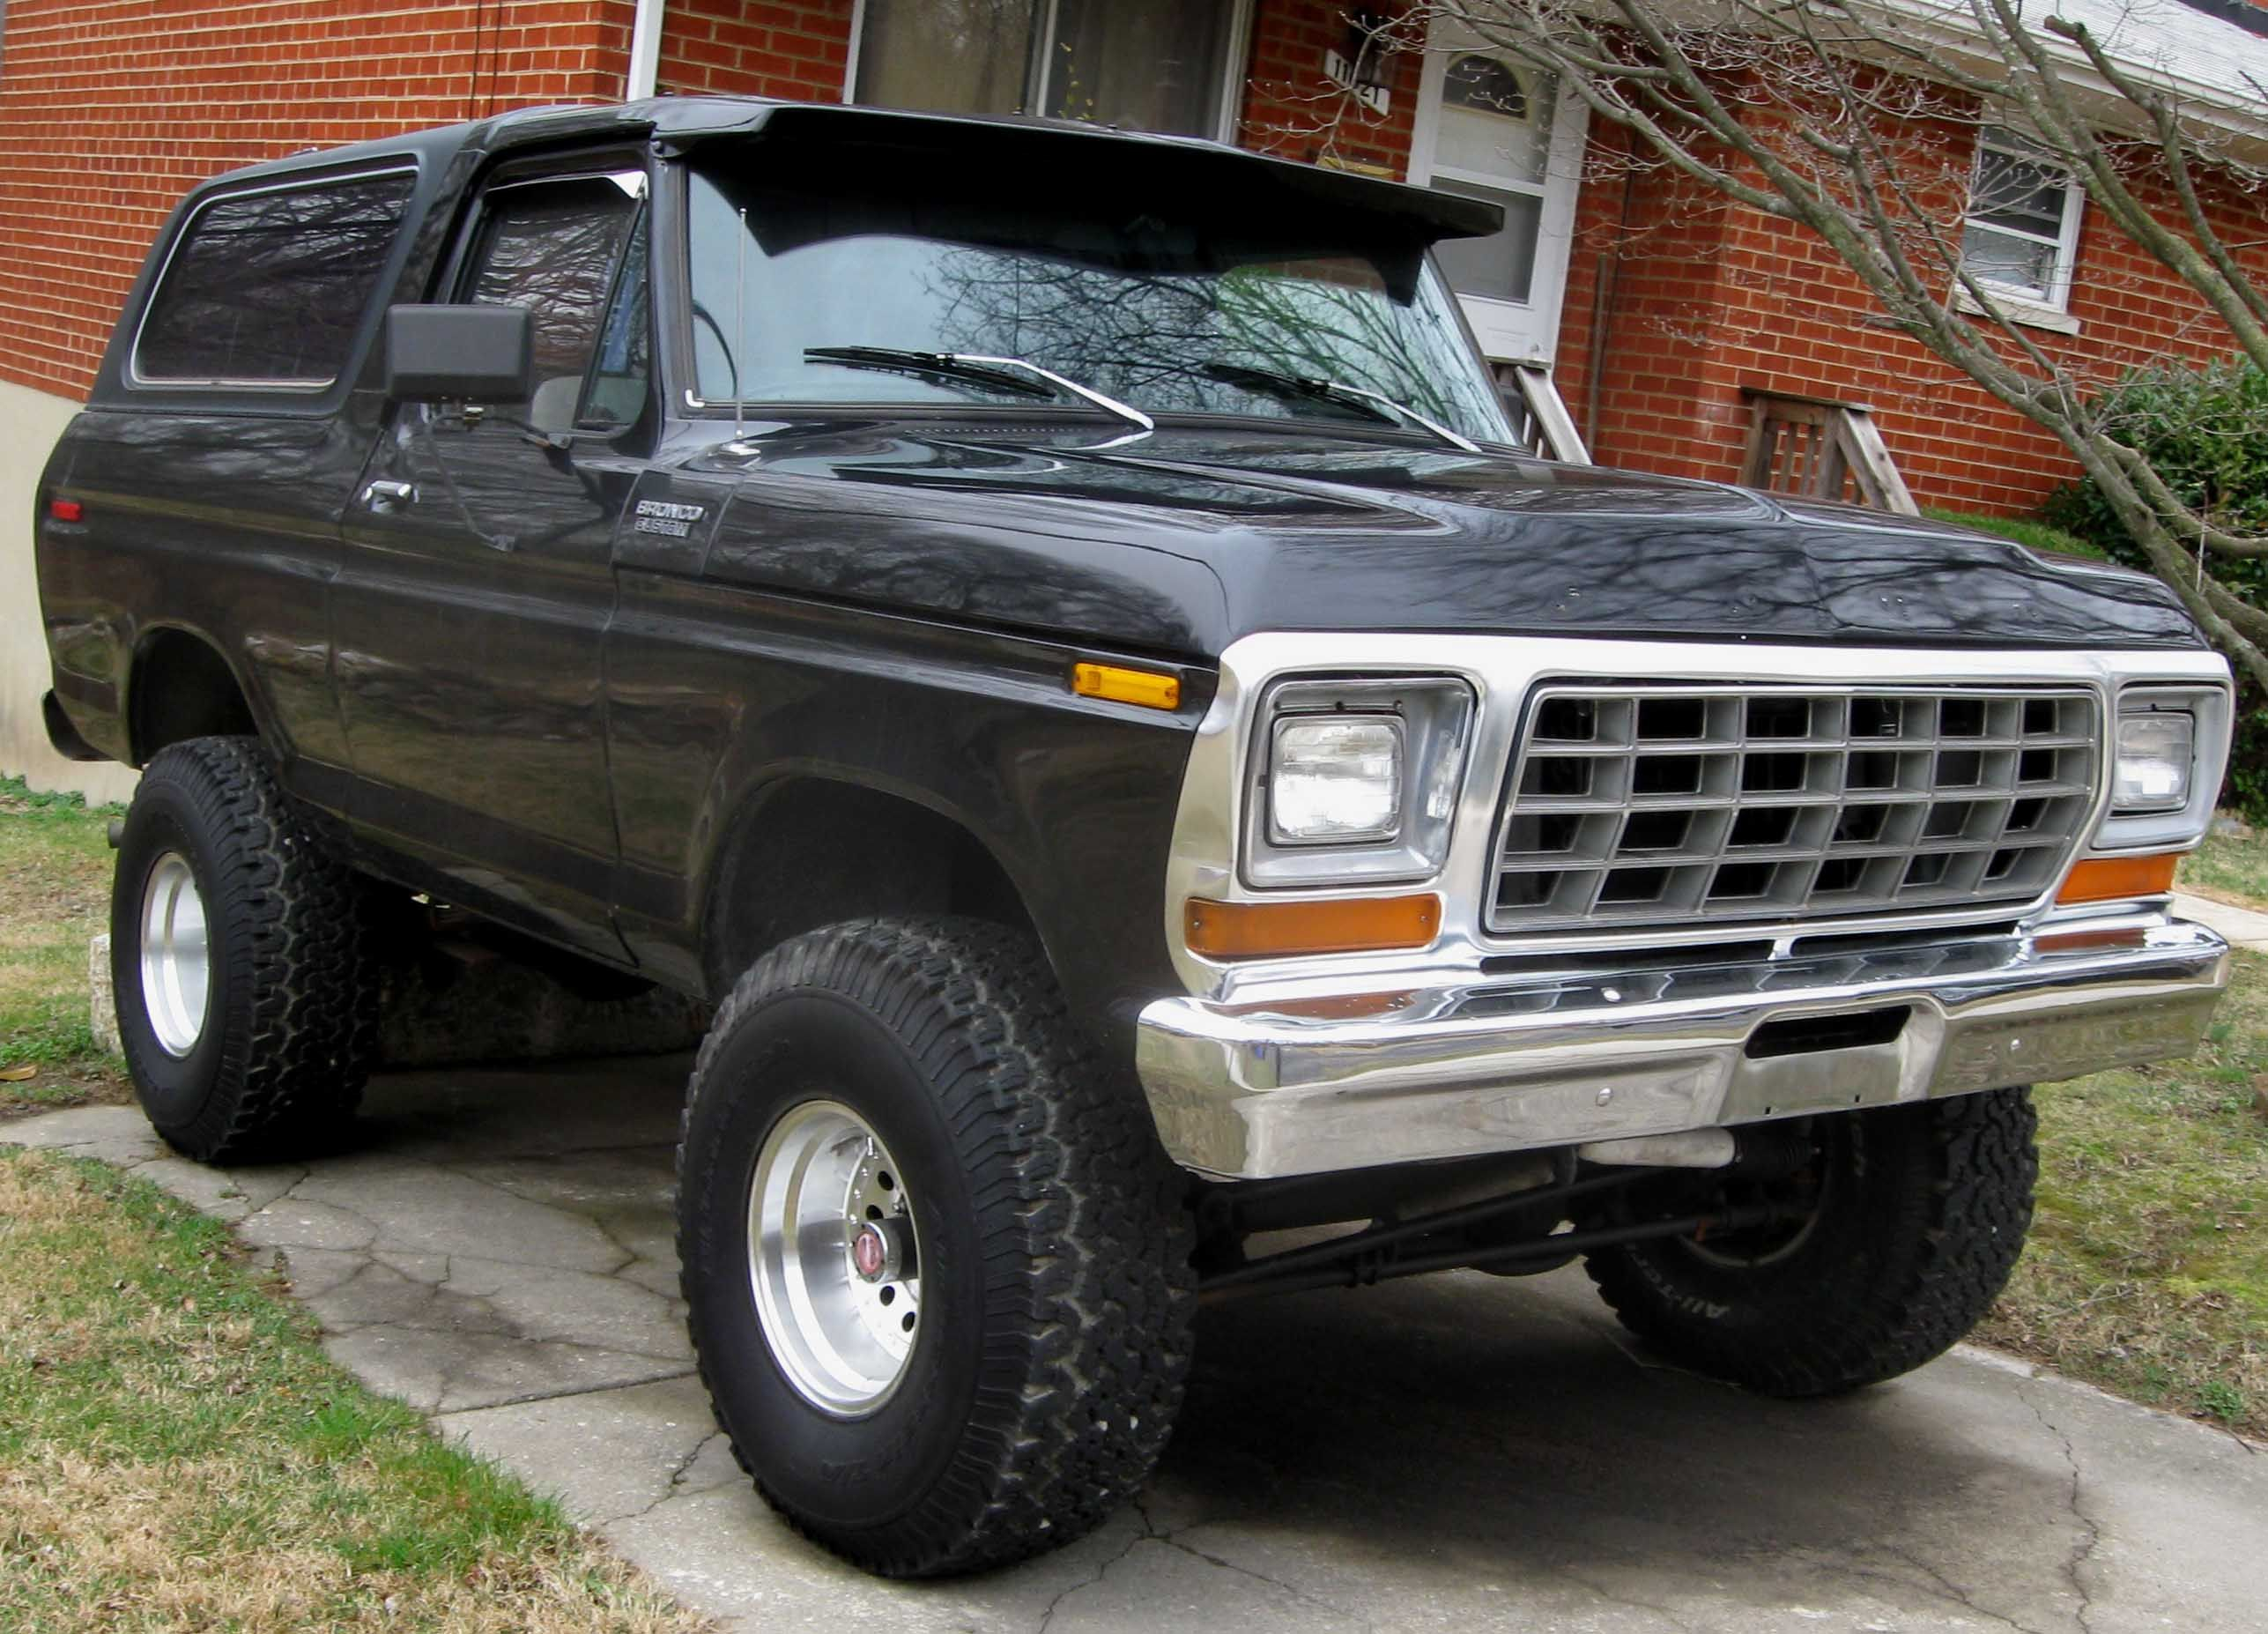 Diesel Ford Bronco For Sale - Dad traded his elcamino in for a black ford bronco it was a 5 speed and 4 wheel drive mom and i went to st louis and on the way back i